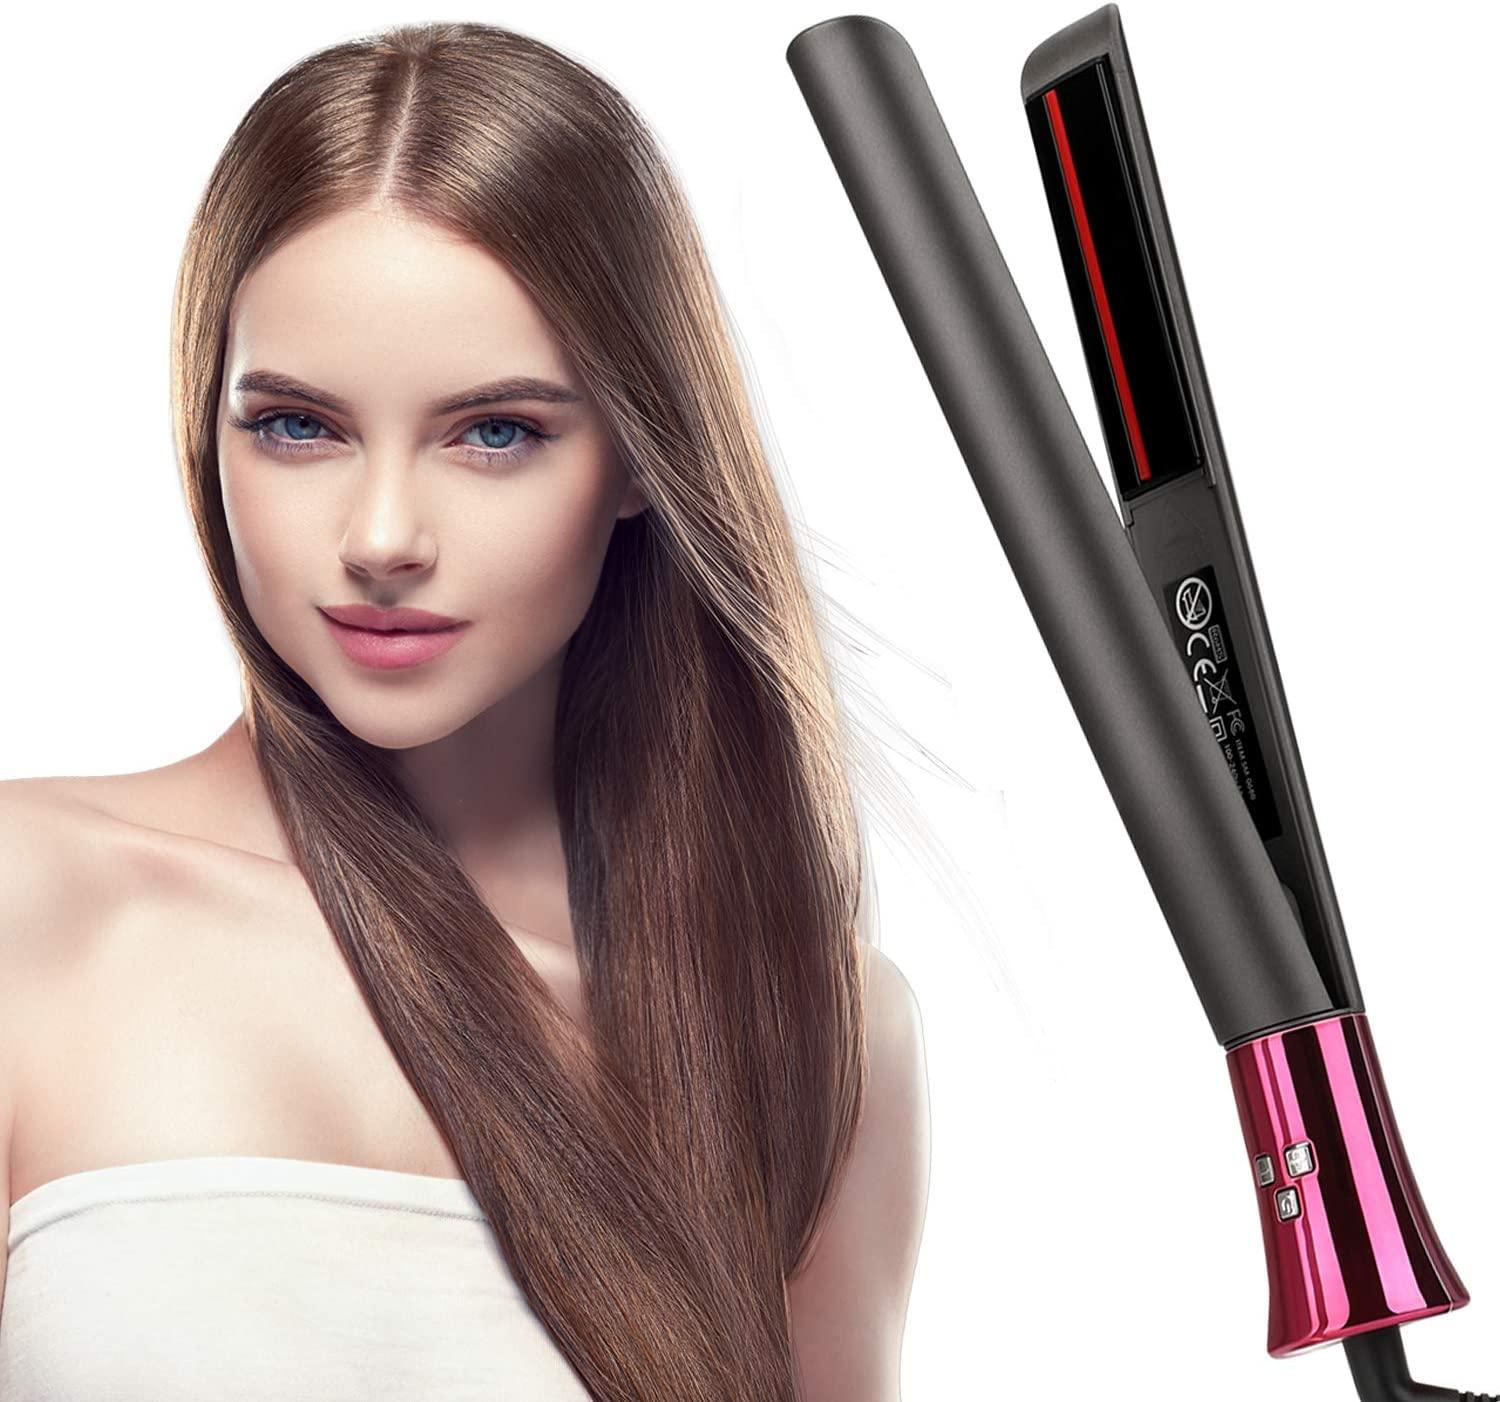 Flat Iron for Hair, MANLI Professional Infrared Ceramic Hair Straightener and Curler 2 in 1, Flat Iron for All Hair Types with 3D Floating Titanium Plates Adjustable Temperature, LED Display